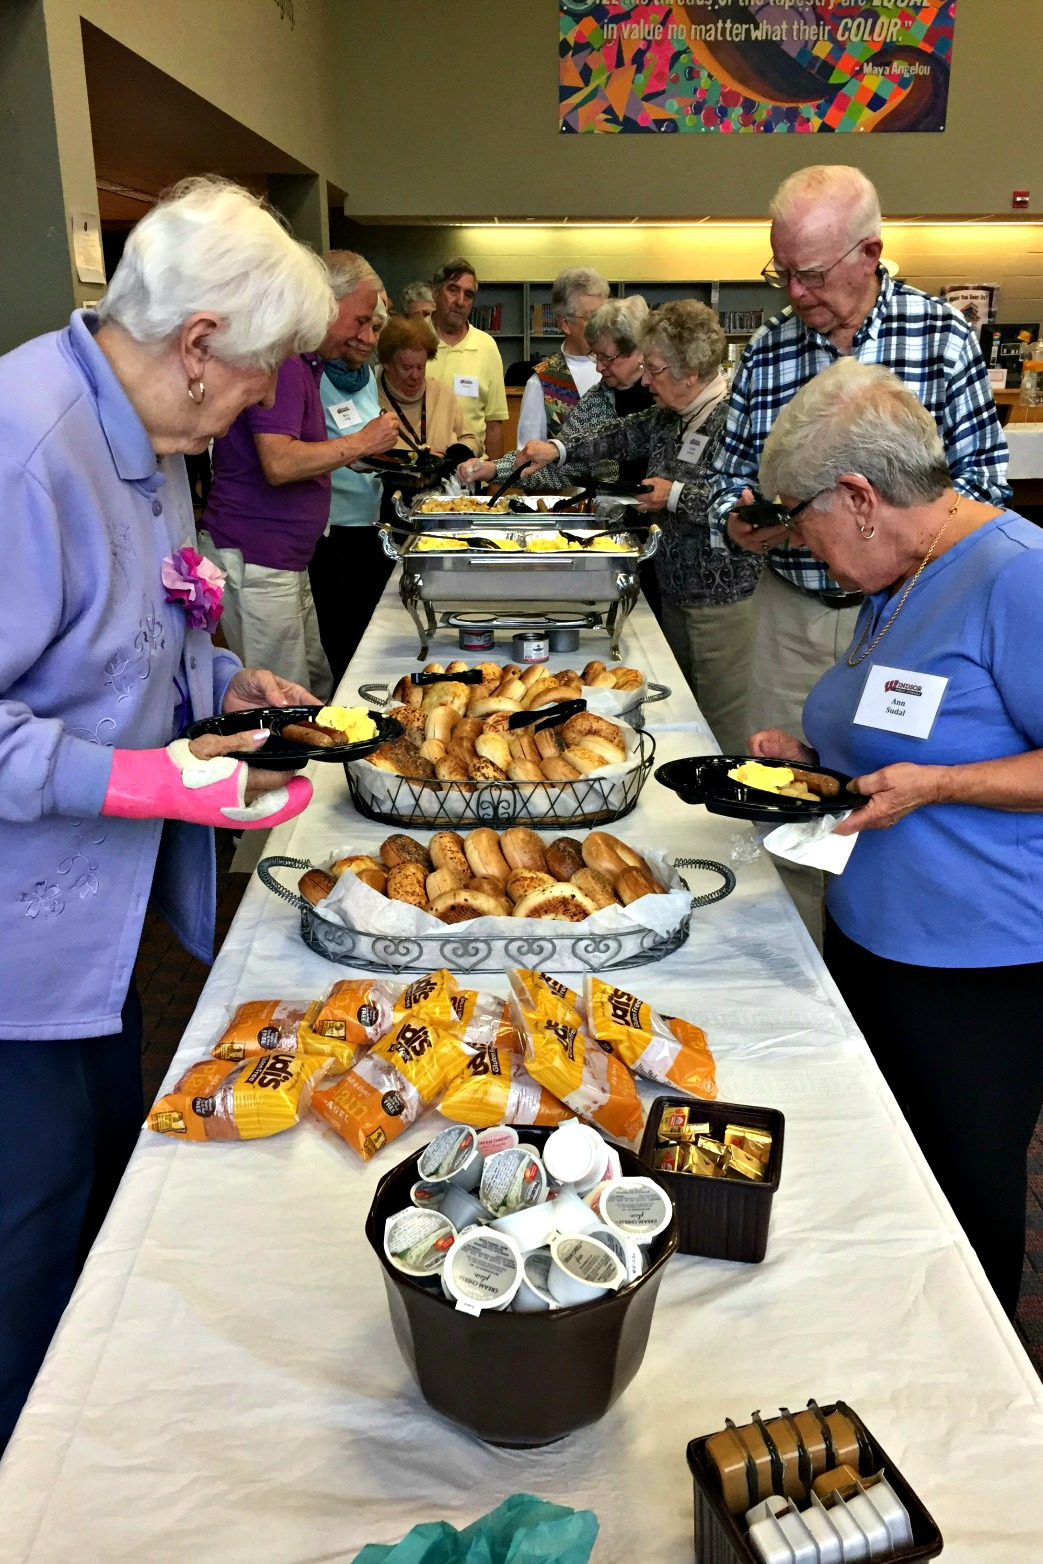 Superintendent's Annual Senior Citizen Breakfast